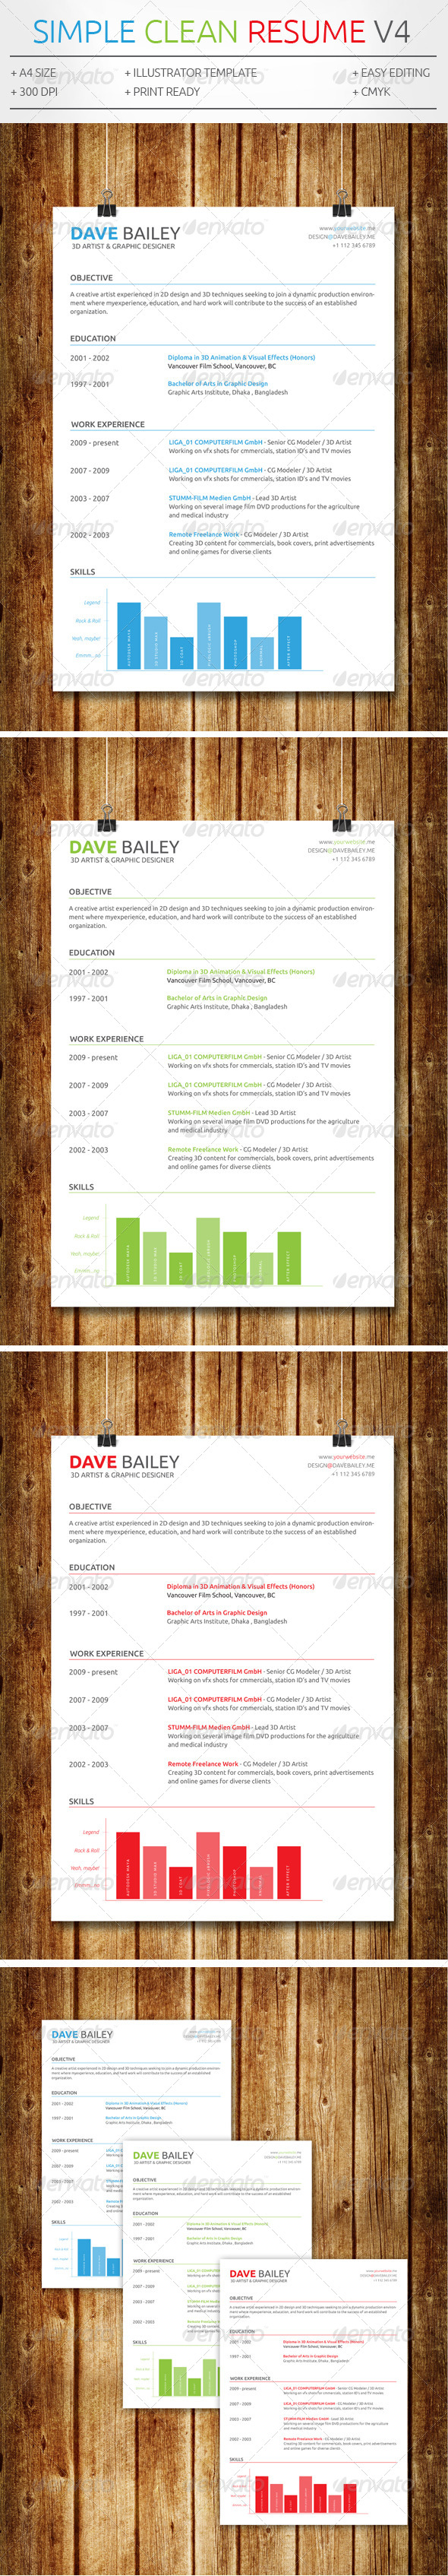 GraphicRiver Simple Clean Resume V4 7605448